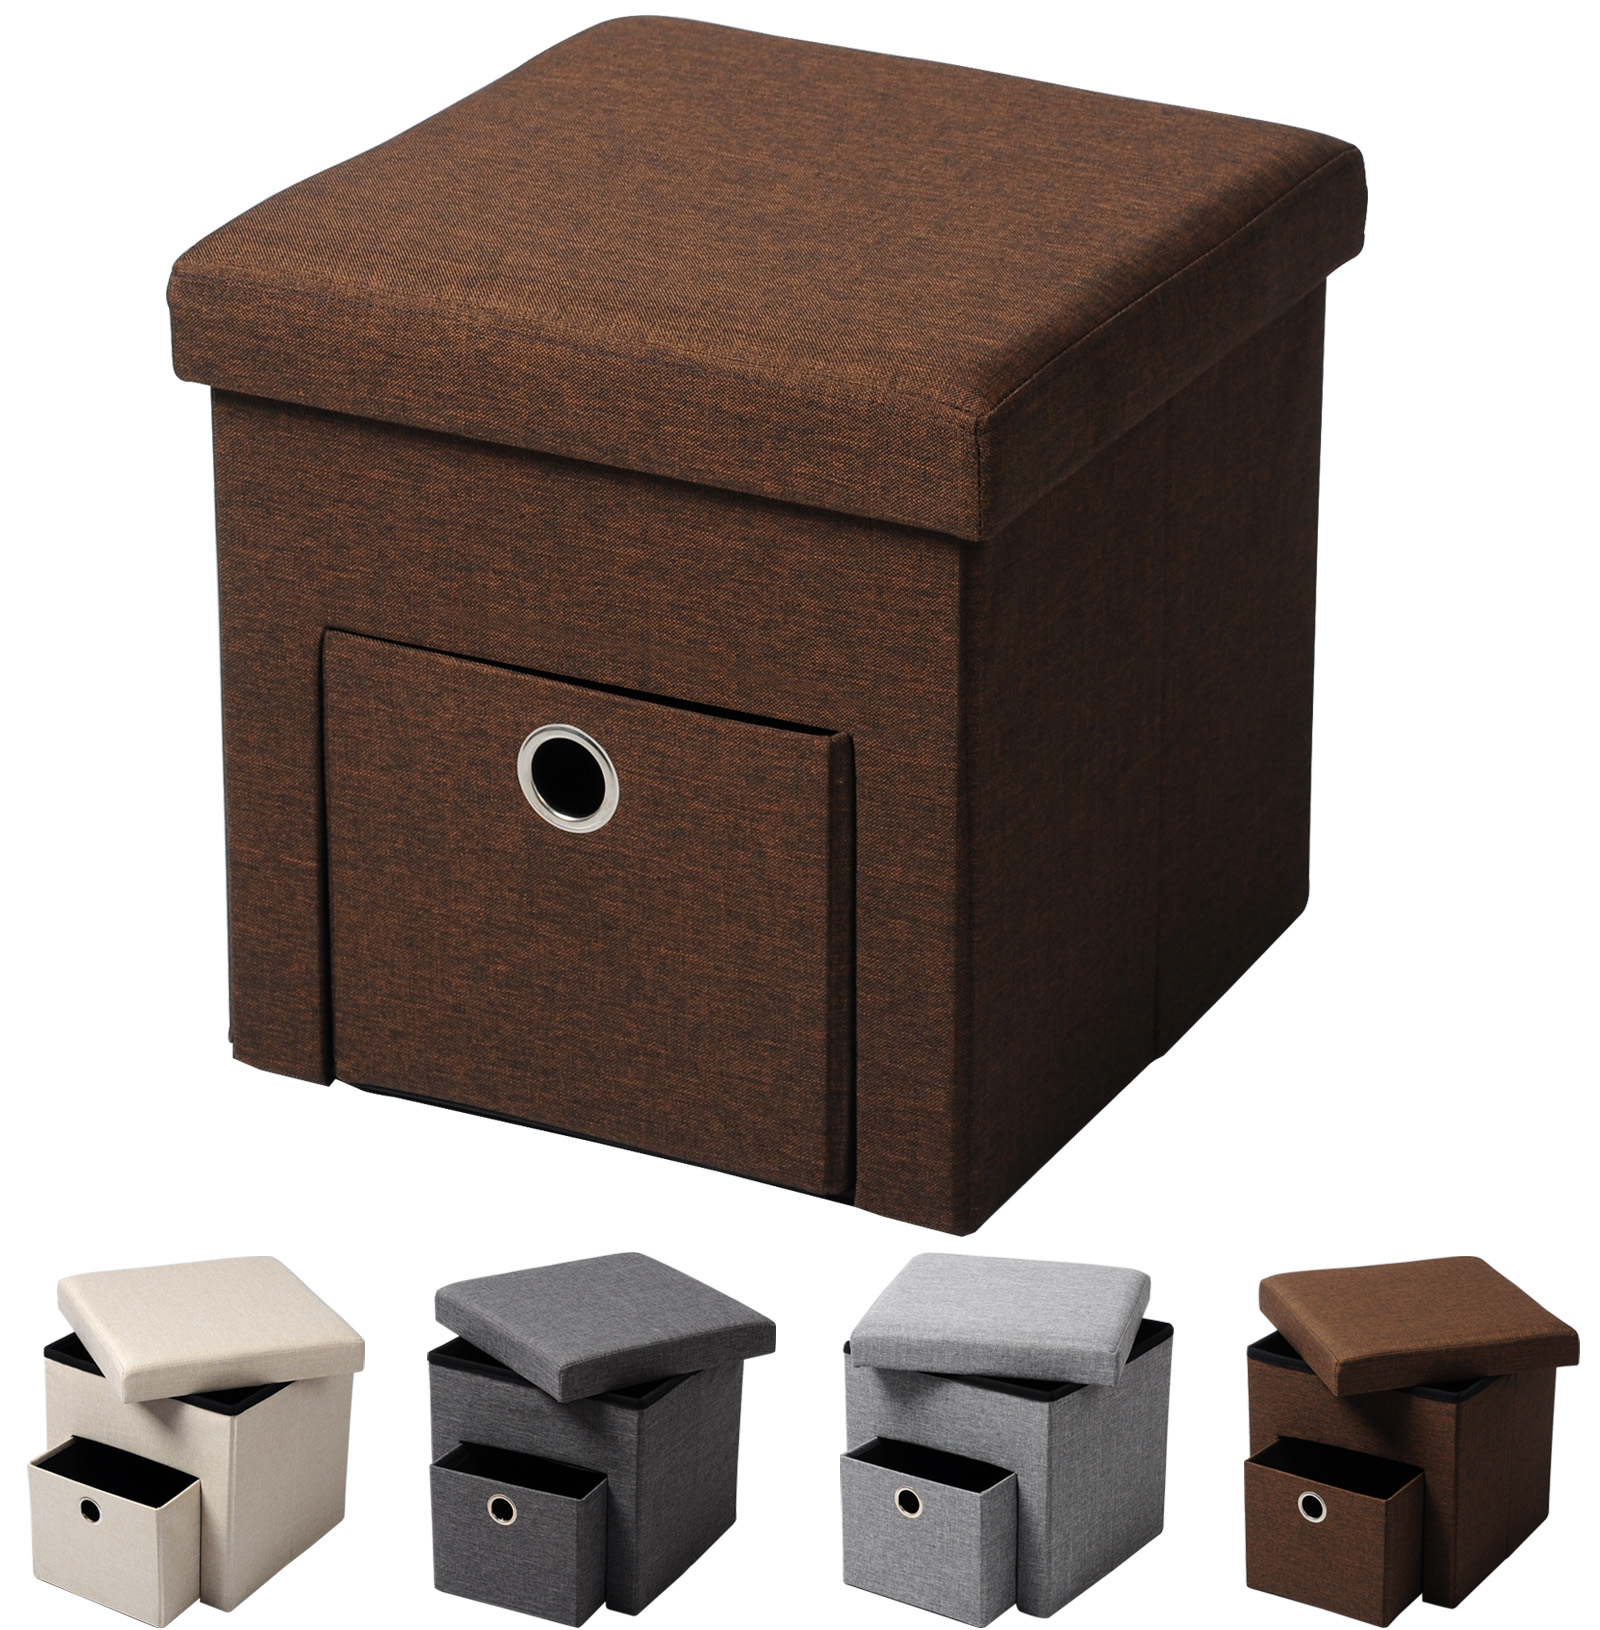 pouf coffre de rangement si ge banquette tabouret pliable avec 1 tiroir f201 ebay. Black Bedroom Furniture Sets. Home Design Ideas